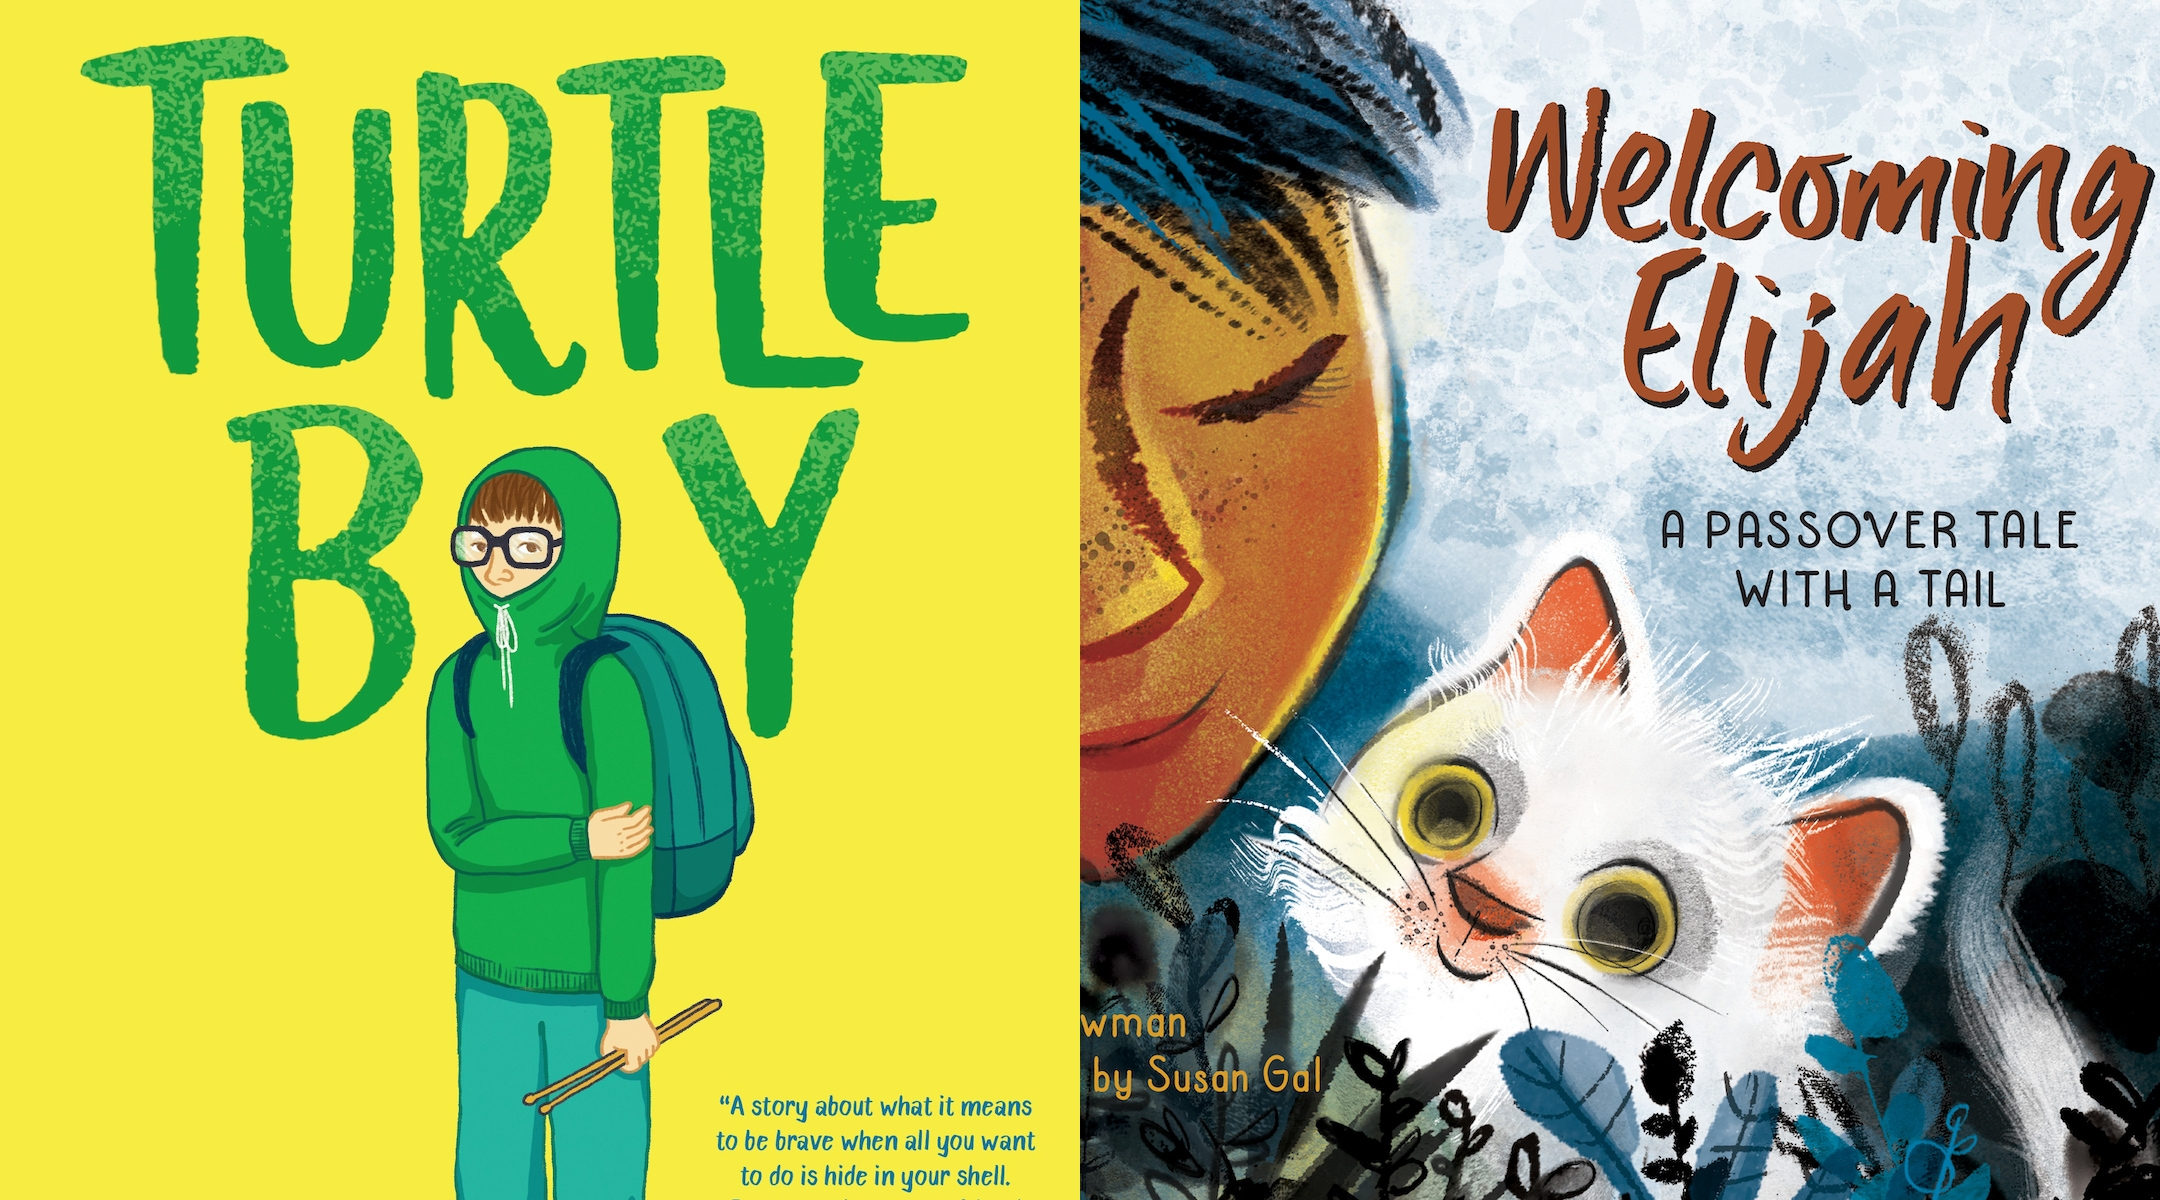 Top children's books feature a Passover tale and 2 coming-of-age debut novels